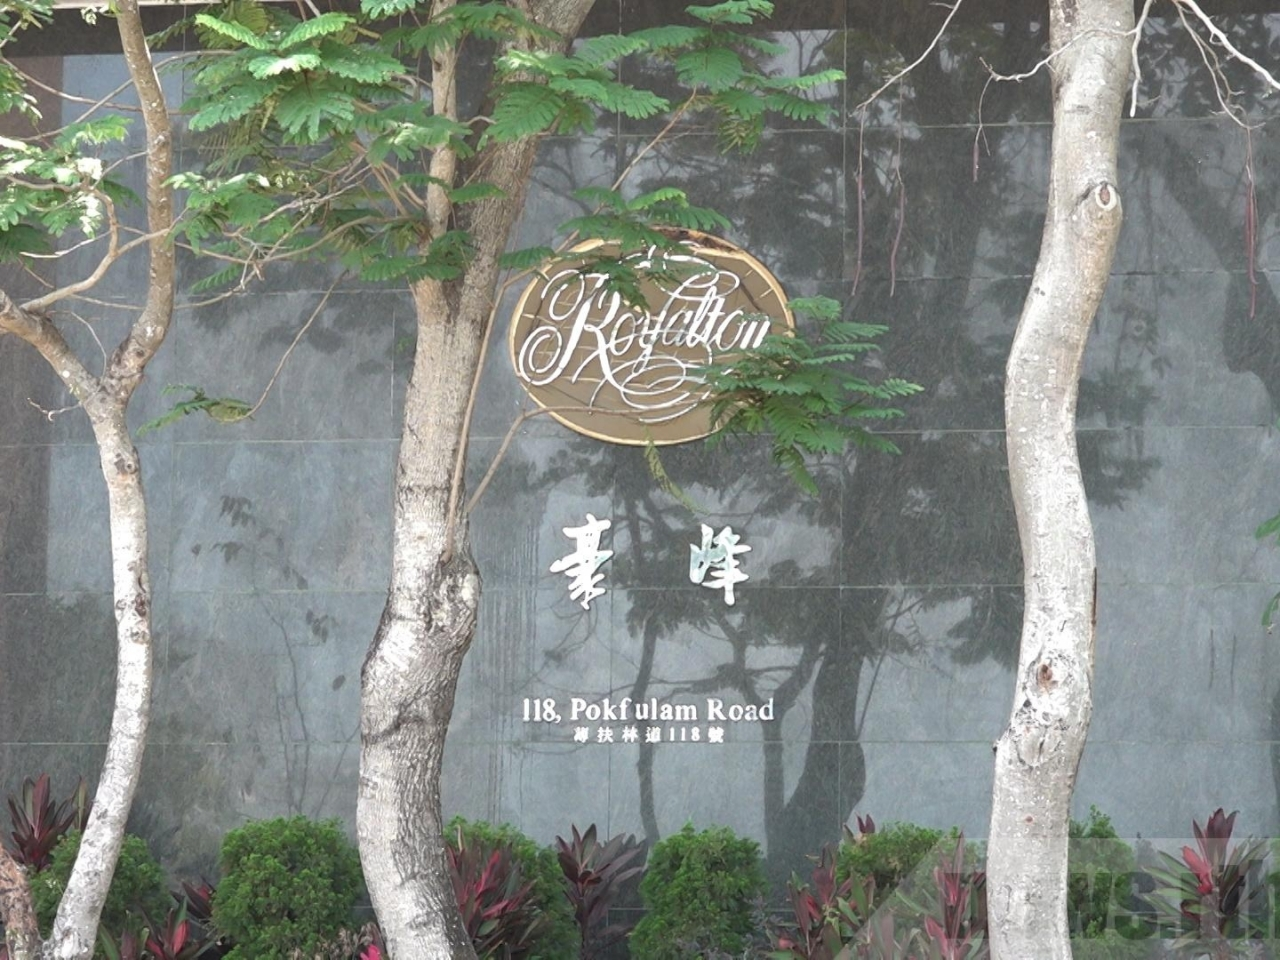 A resident of Royalton, John Nicholls, thinks sending him and his neighbours into quarantine was 'overkill'. File photo: RTHK